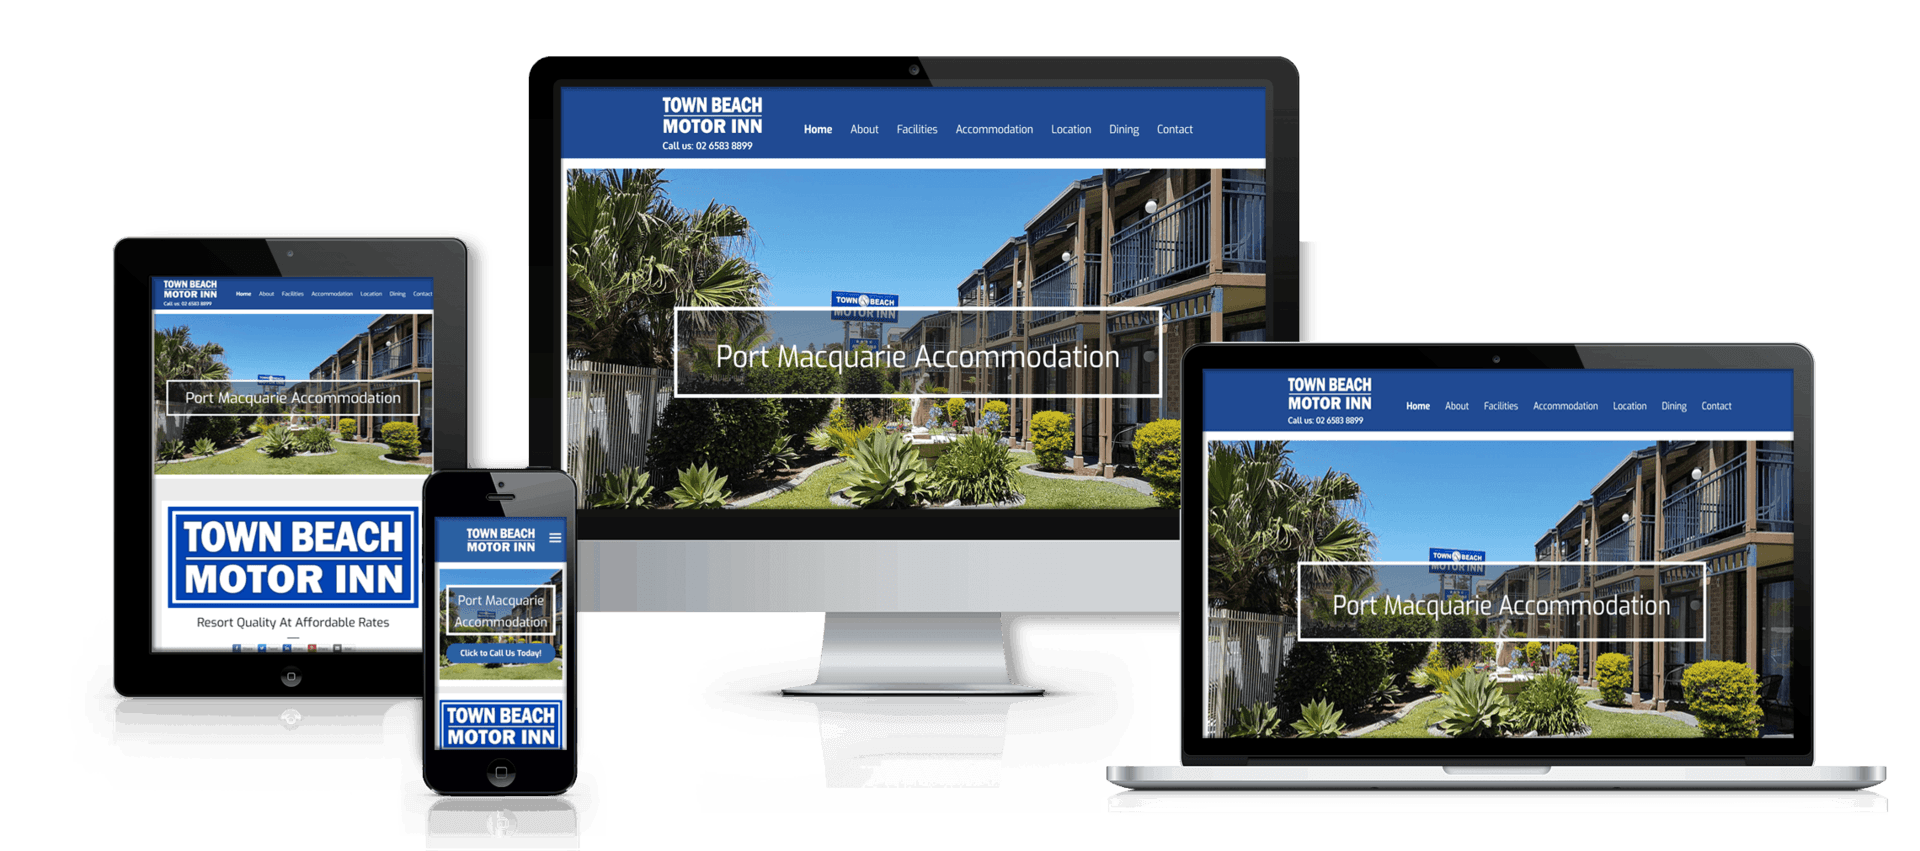 Edgezone Media client Town Beach Motor Inn website image.